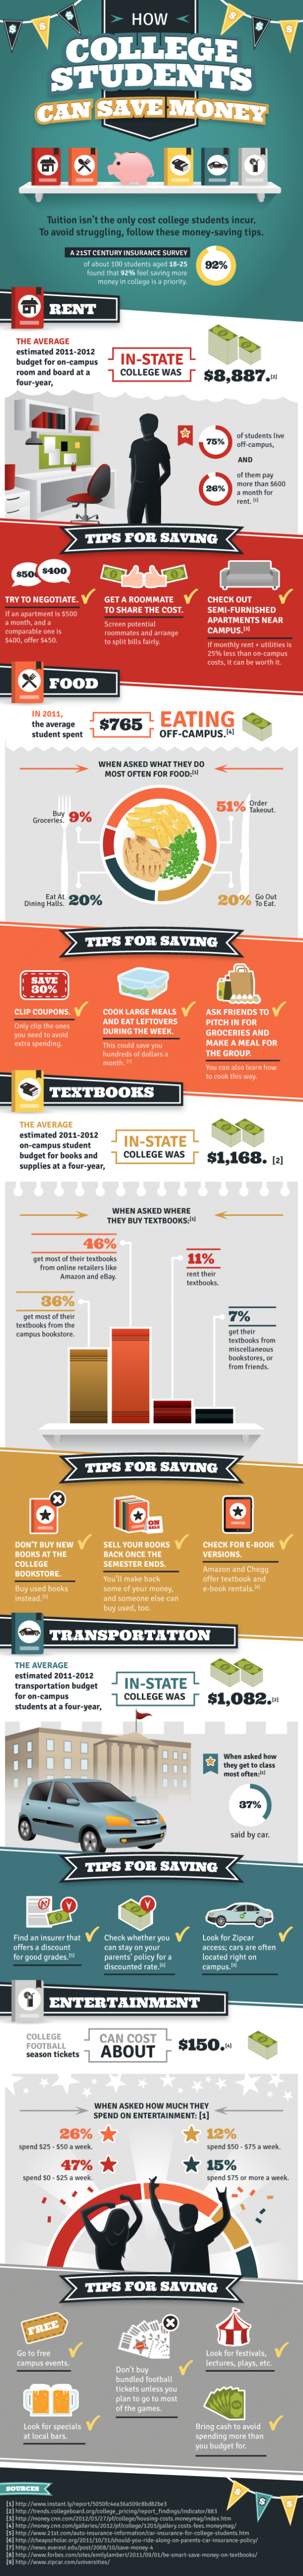 How College Students Can Save Money Infographic